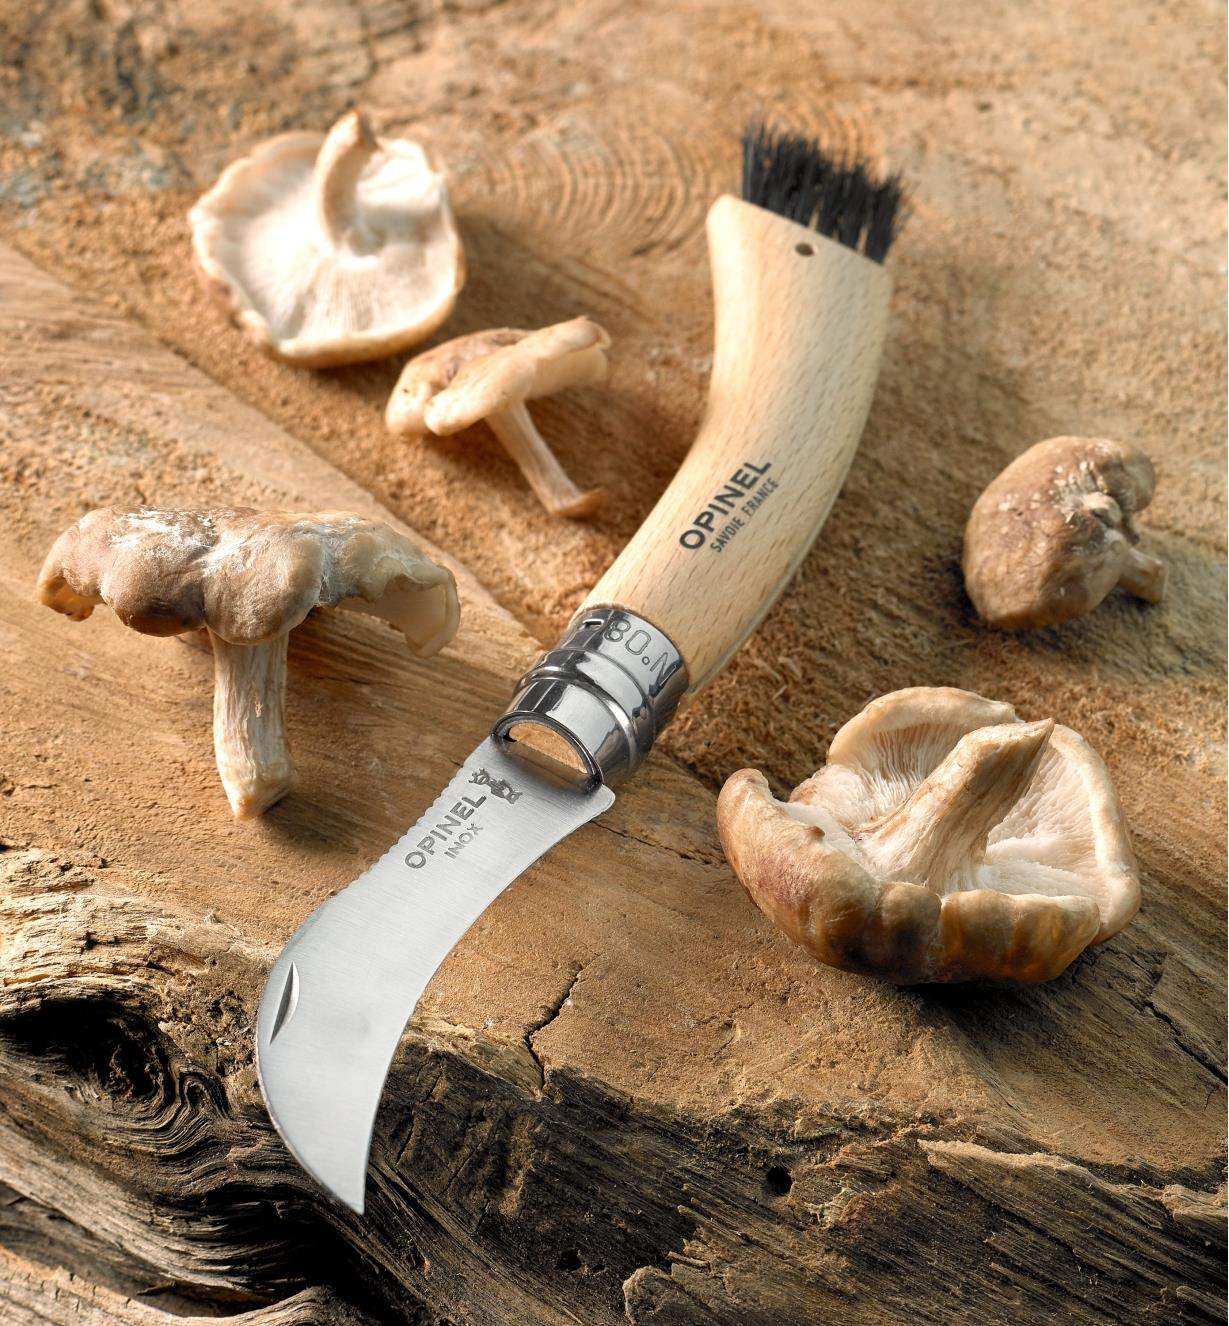 Mushroom knife with harvested mushrooms